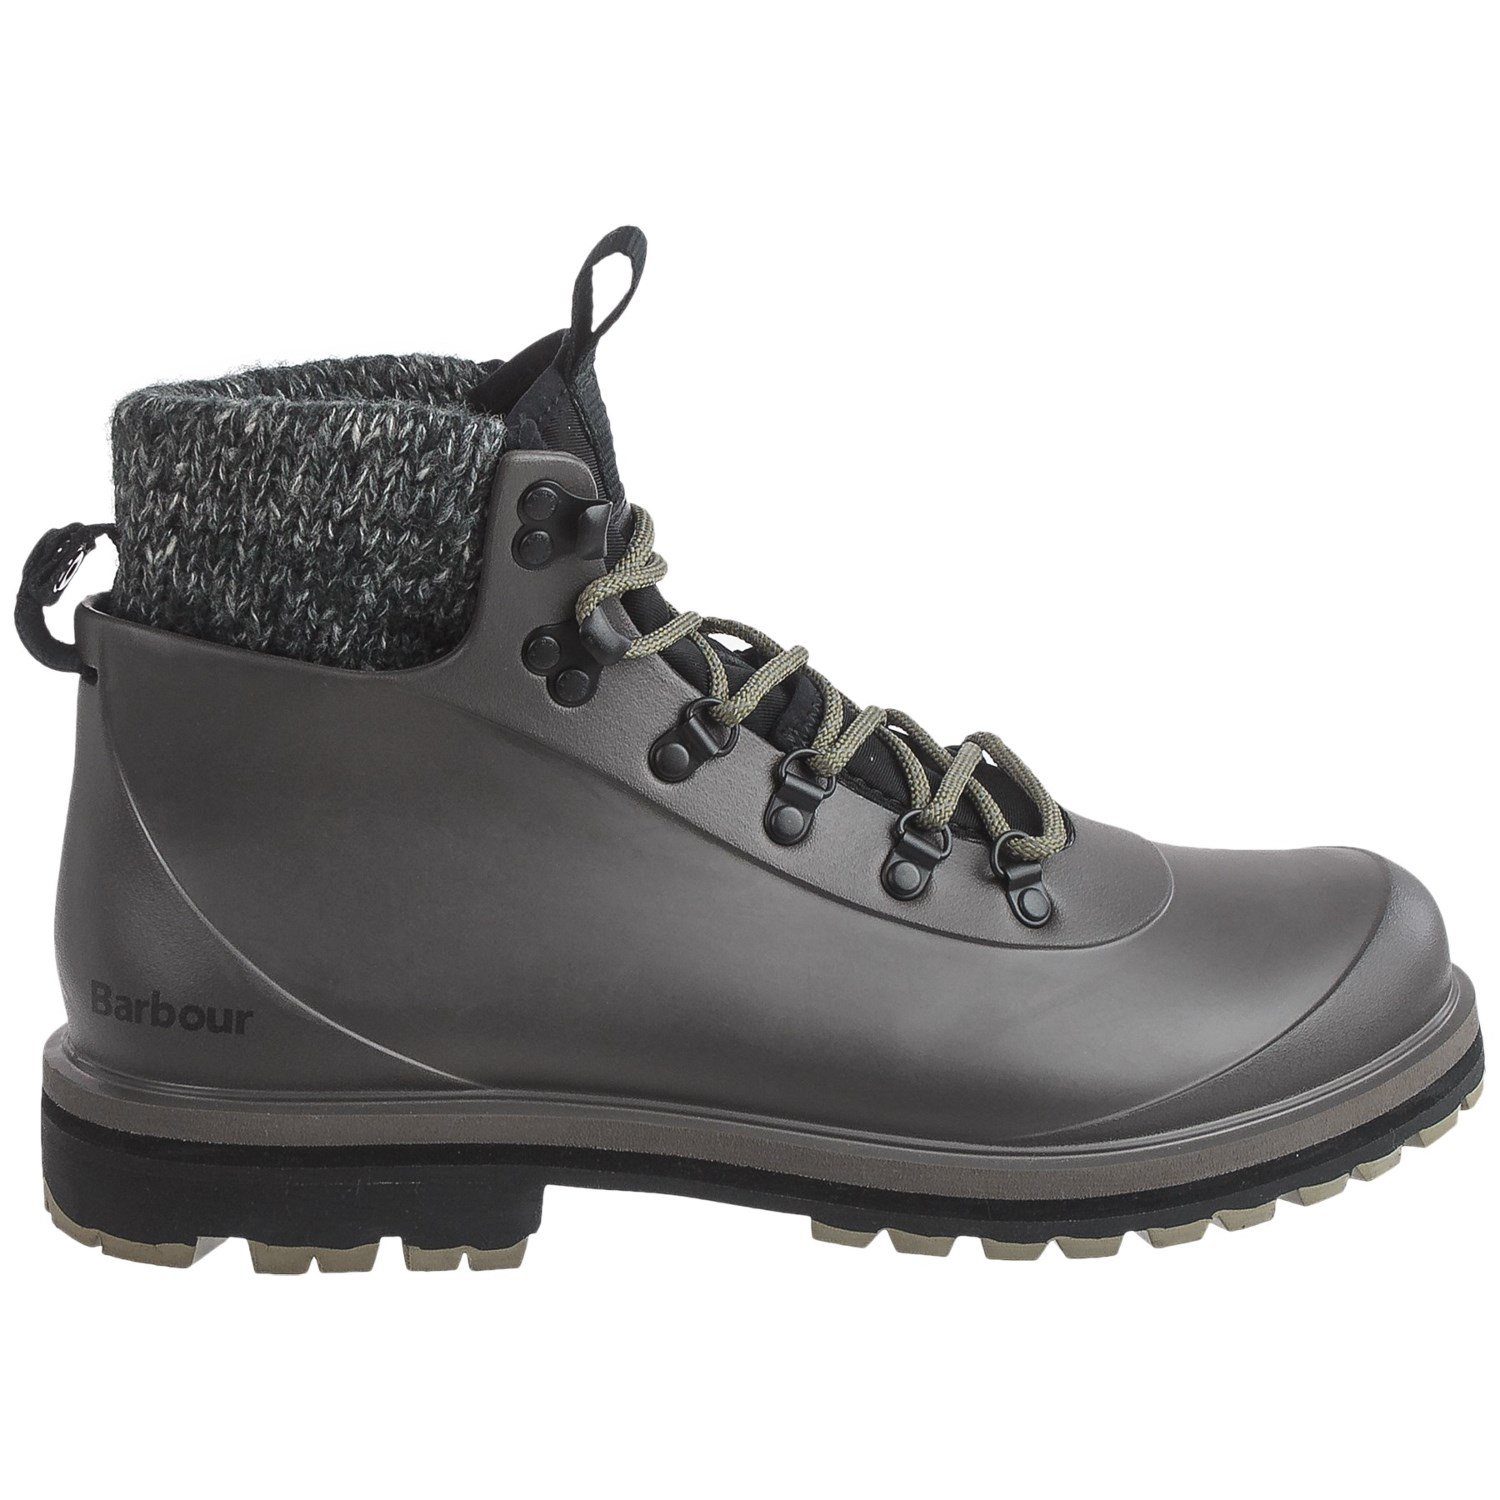 4d98cc7a6bed20 Barbour Zed Hiker Cold Weather Boots - Waterproof (For Men)